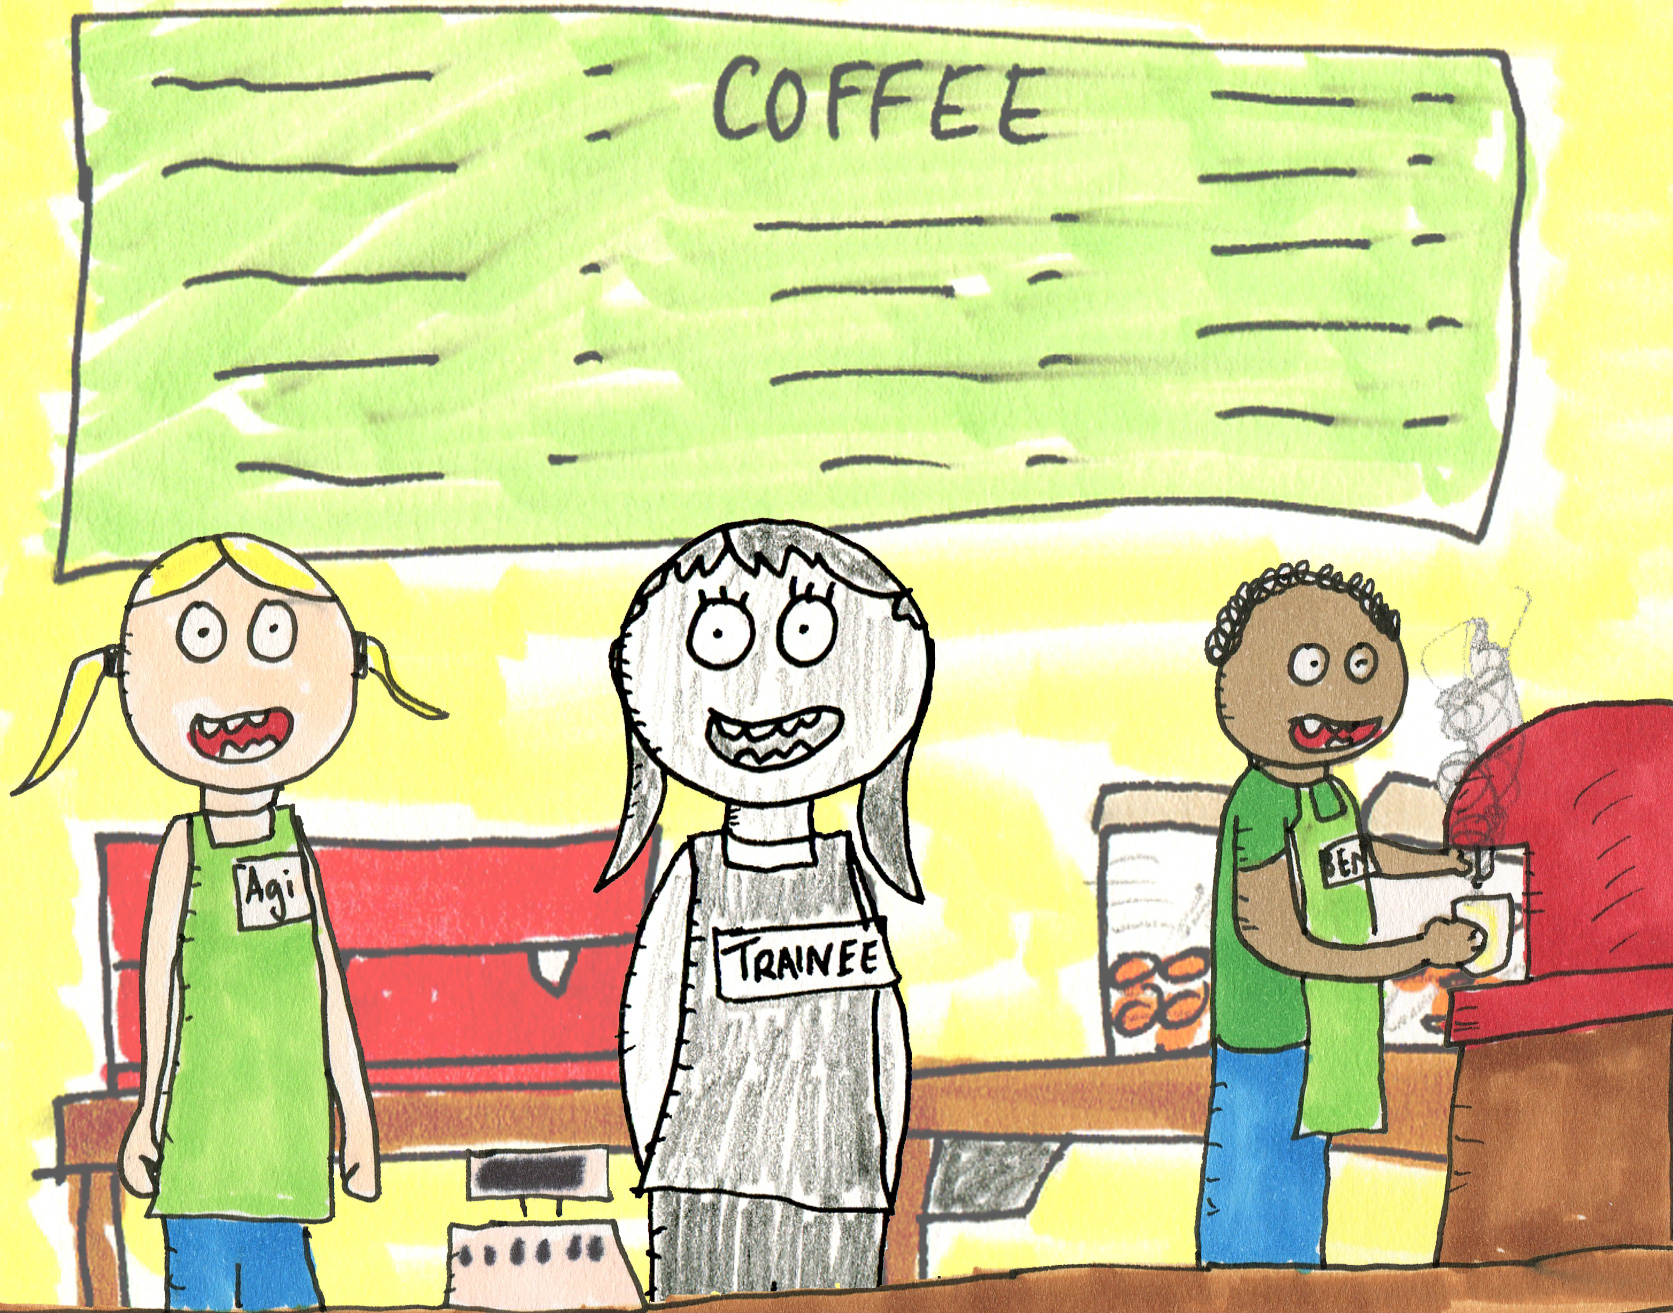 What can coffee shop trainees and corporate talent shows teach us about identity and community?